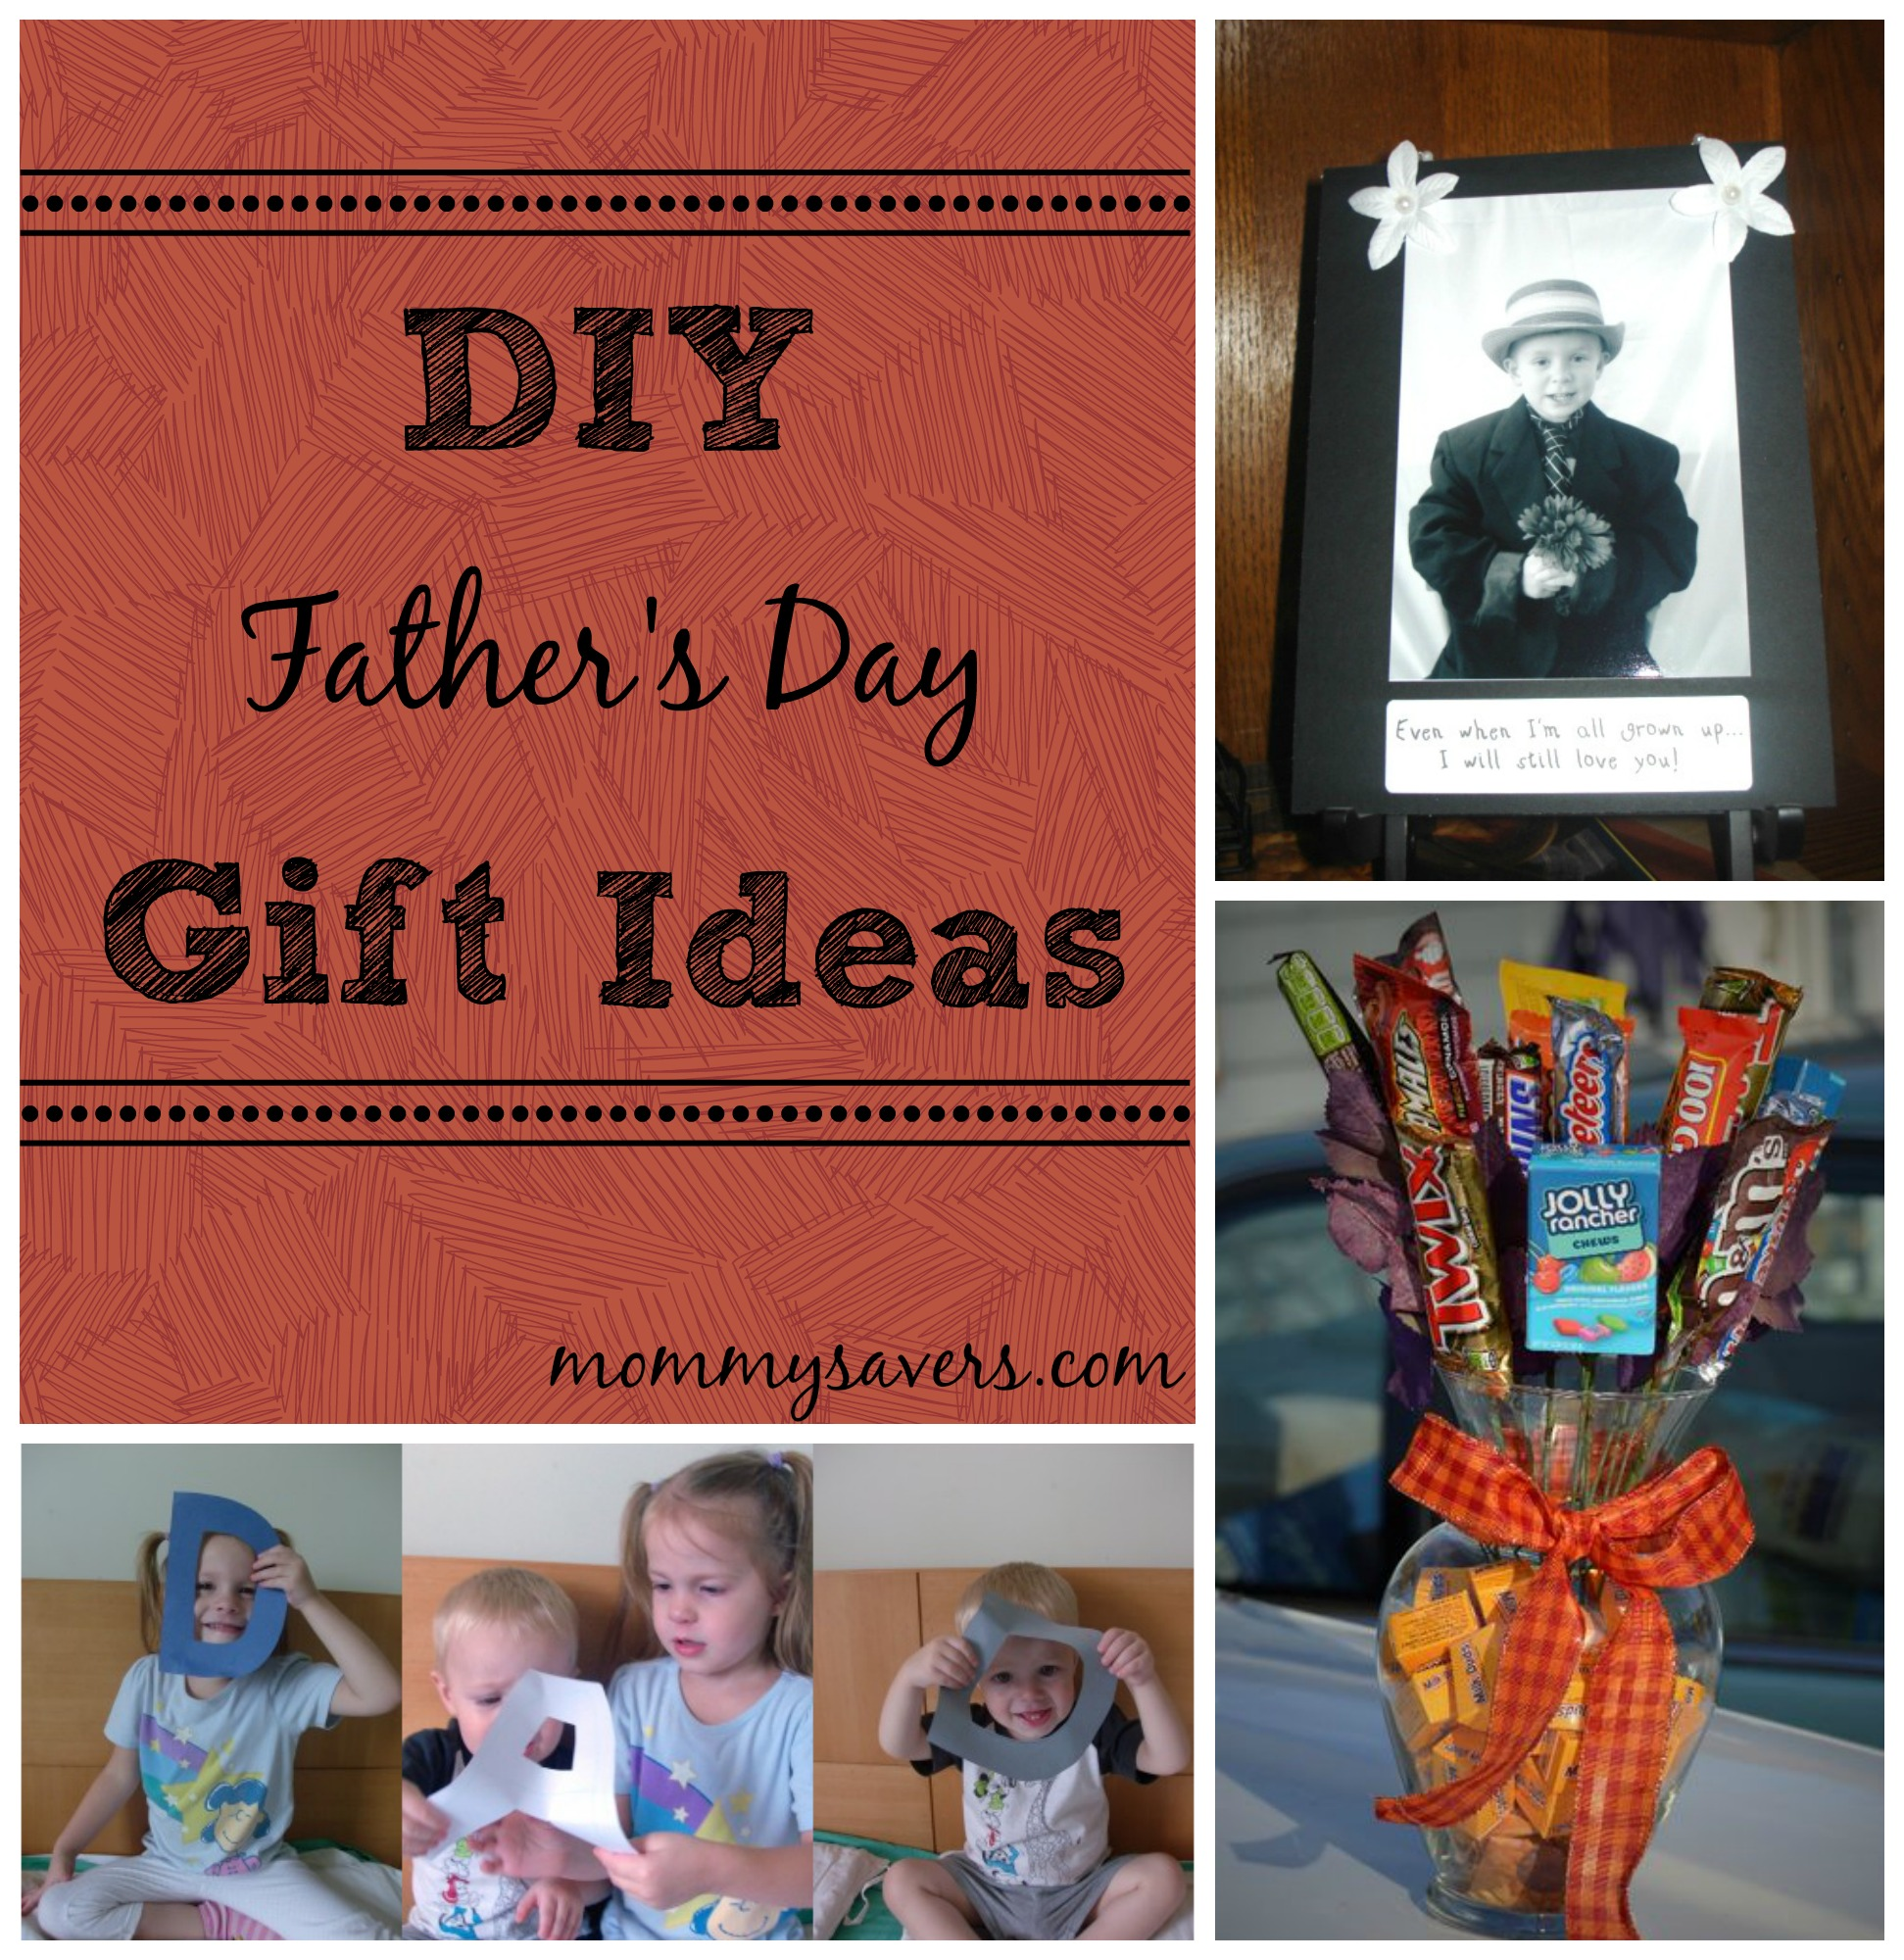 diy father s day gift ideas mommysavers mommysavers